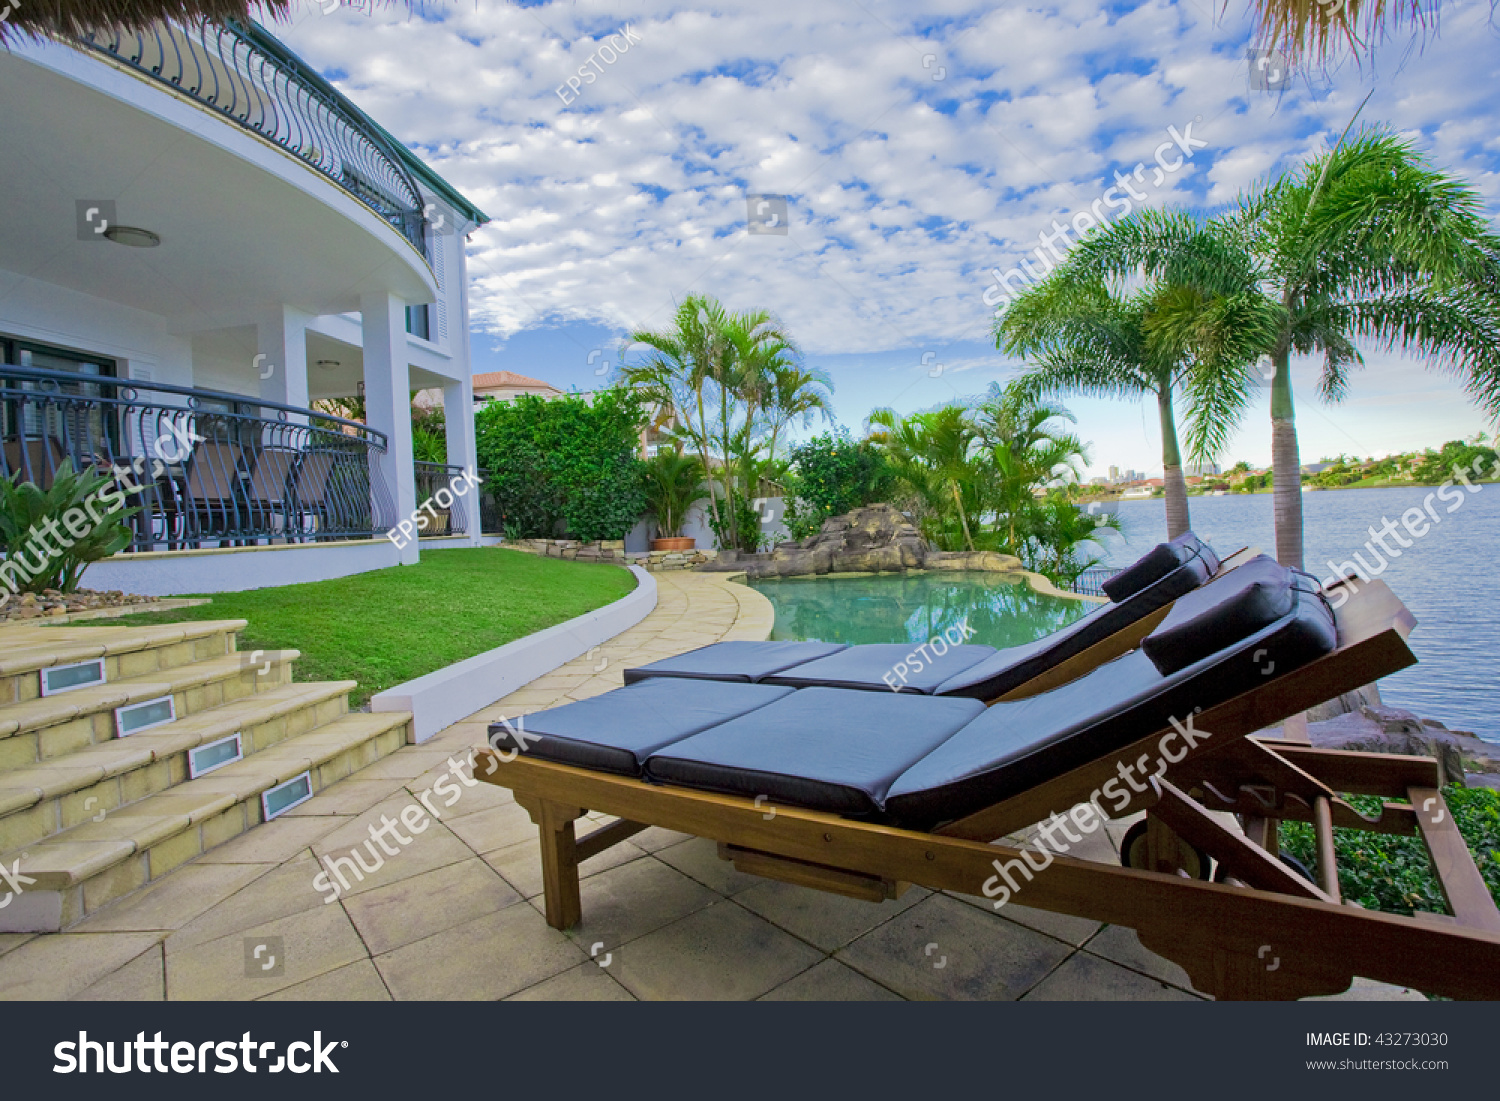 Deck Chairs By The Pool At Waterfront Mansion Stock Photo 43273030 Shutterstock